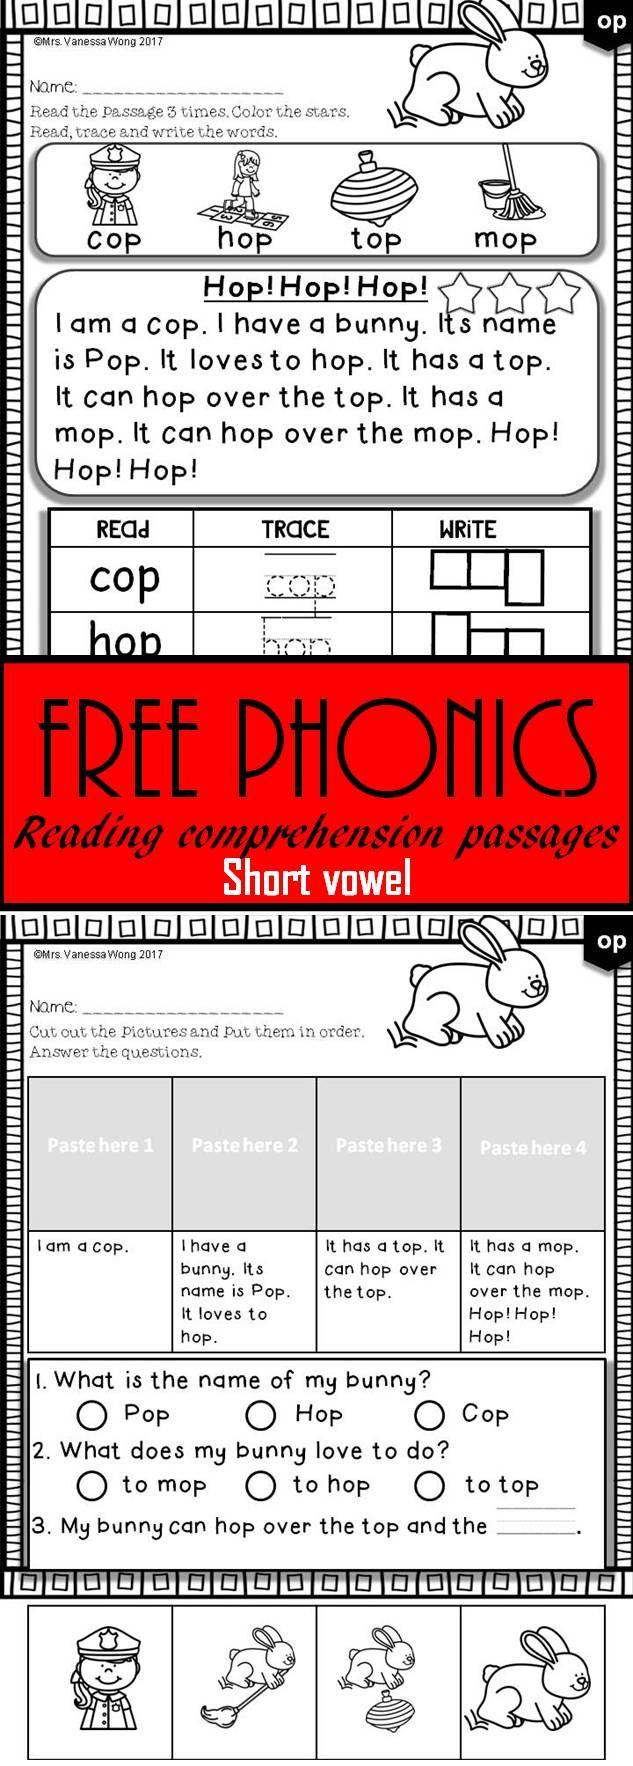 Free phonics activities and passages for vocabulary, fluency and ...